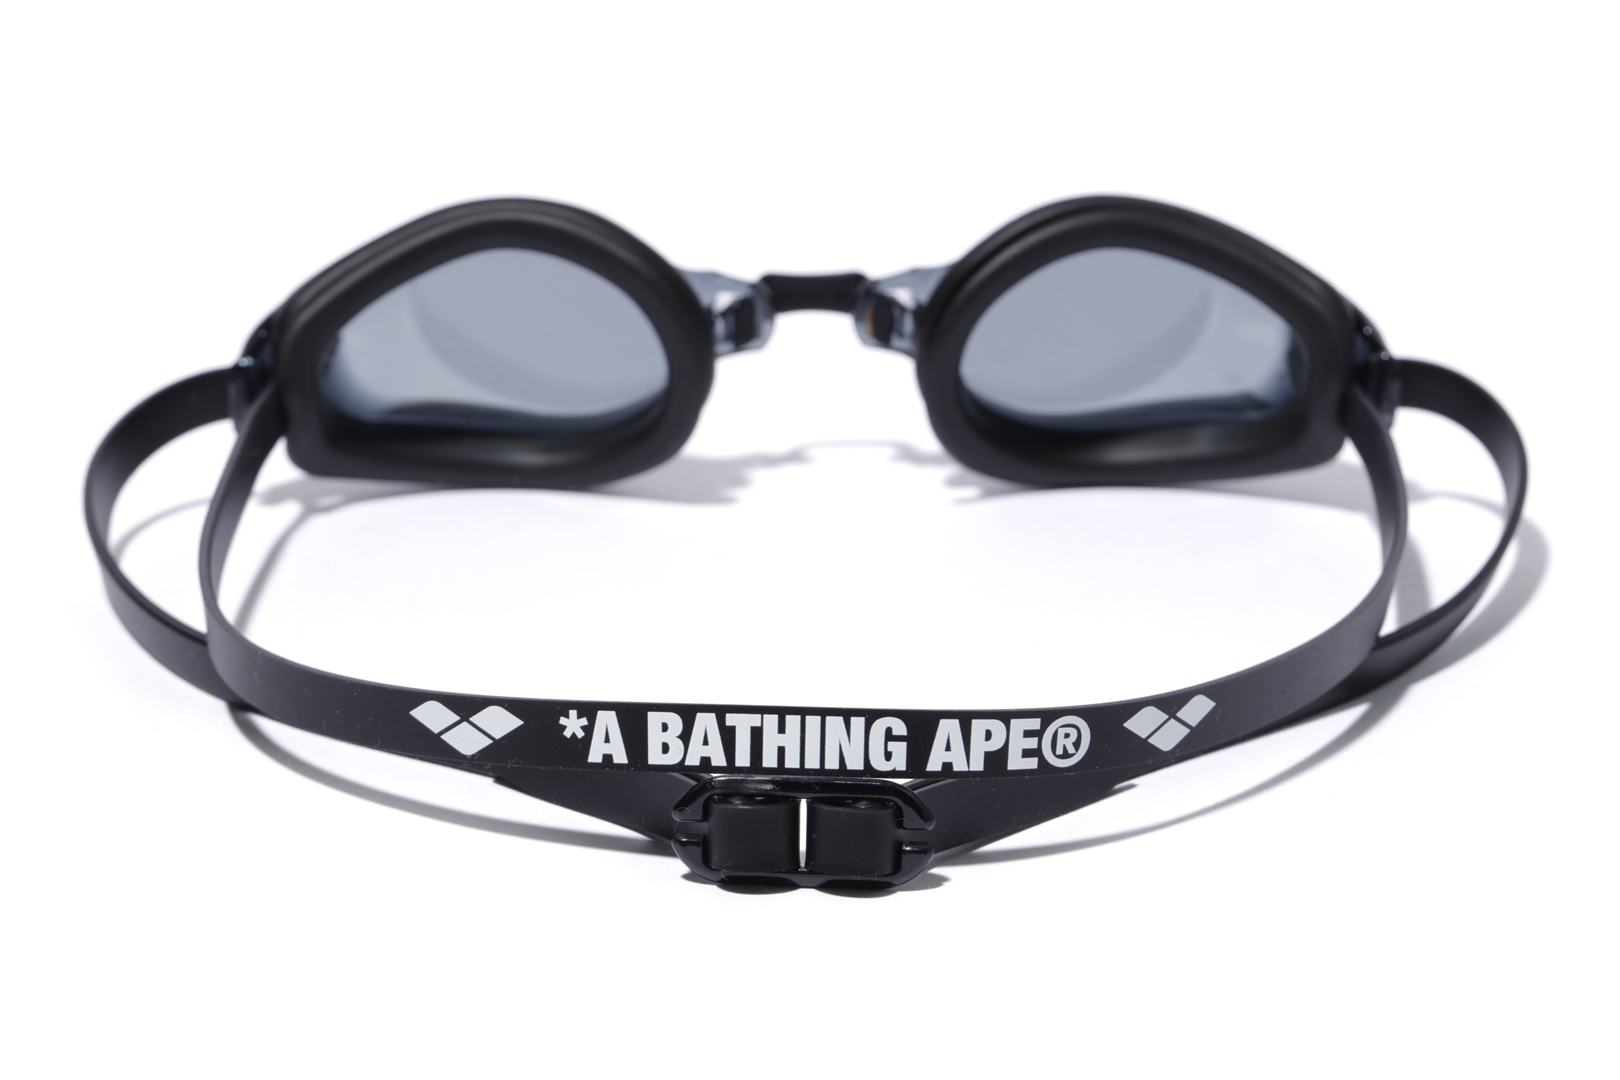 A BATHING APE® × arena_a0174495_11183384.jpg